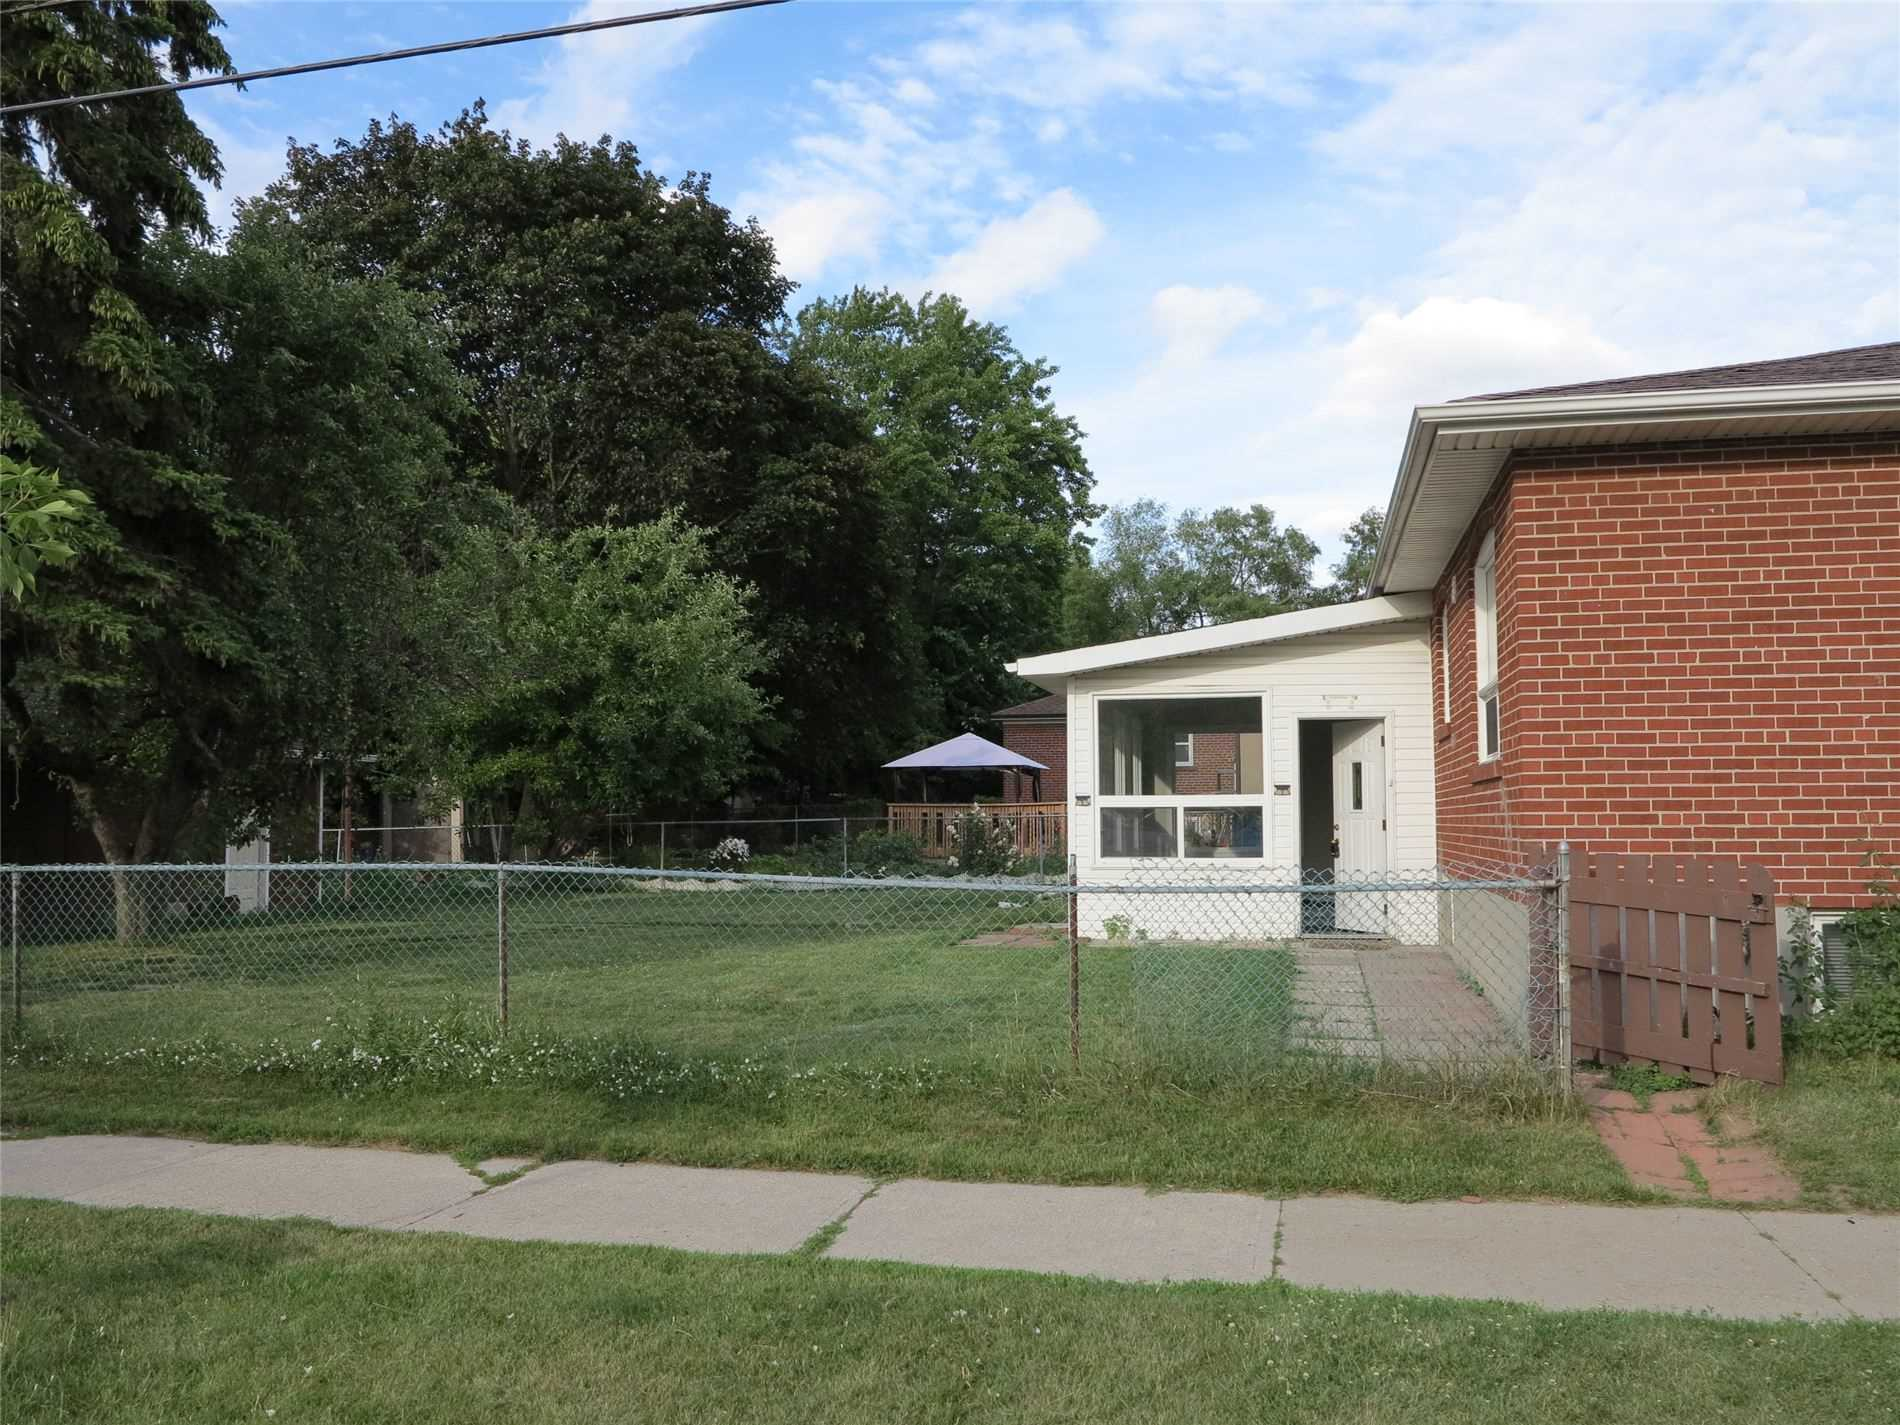 Image 7 of 30 showing inside of 3 Bedroom Detached Bungalow for Lease at 456 Drewry Ave, Toronto M2R2K7